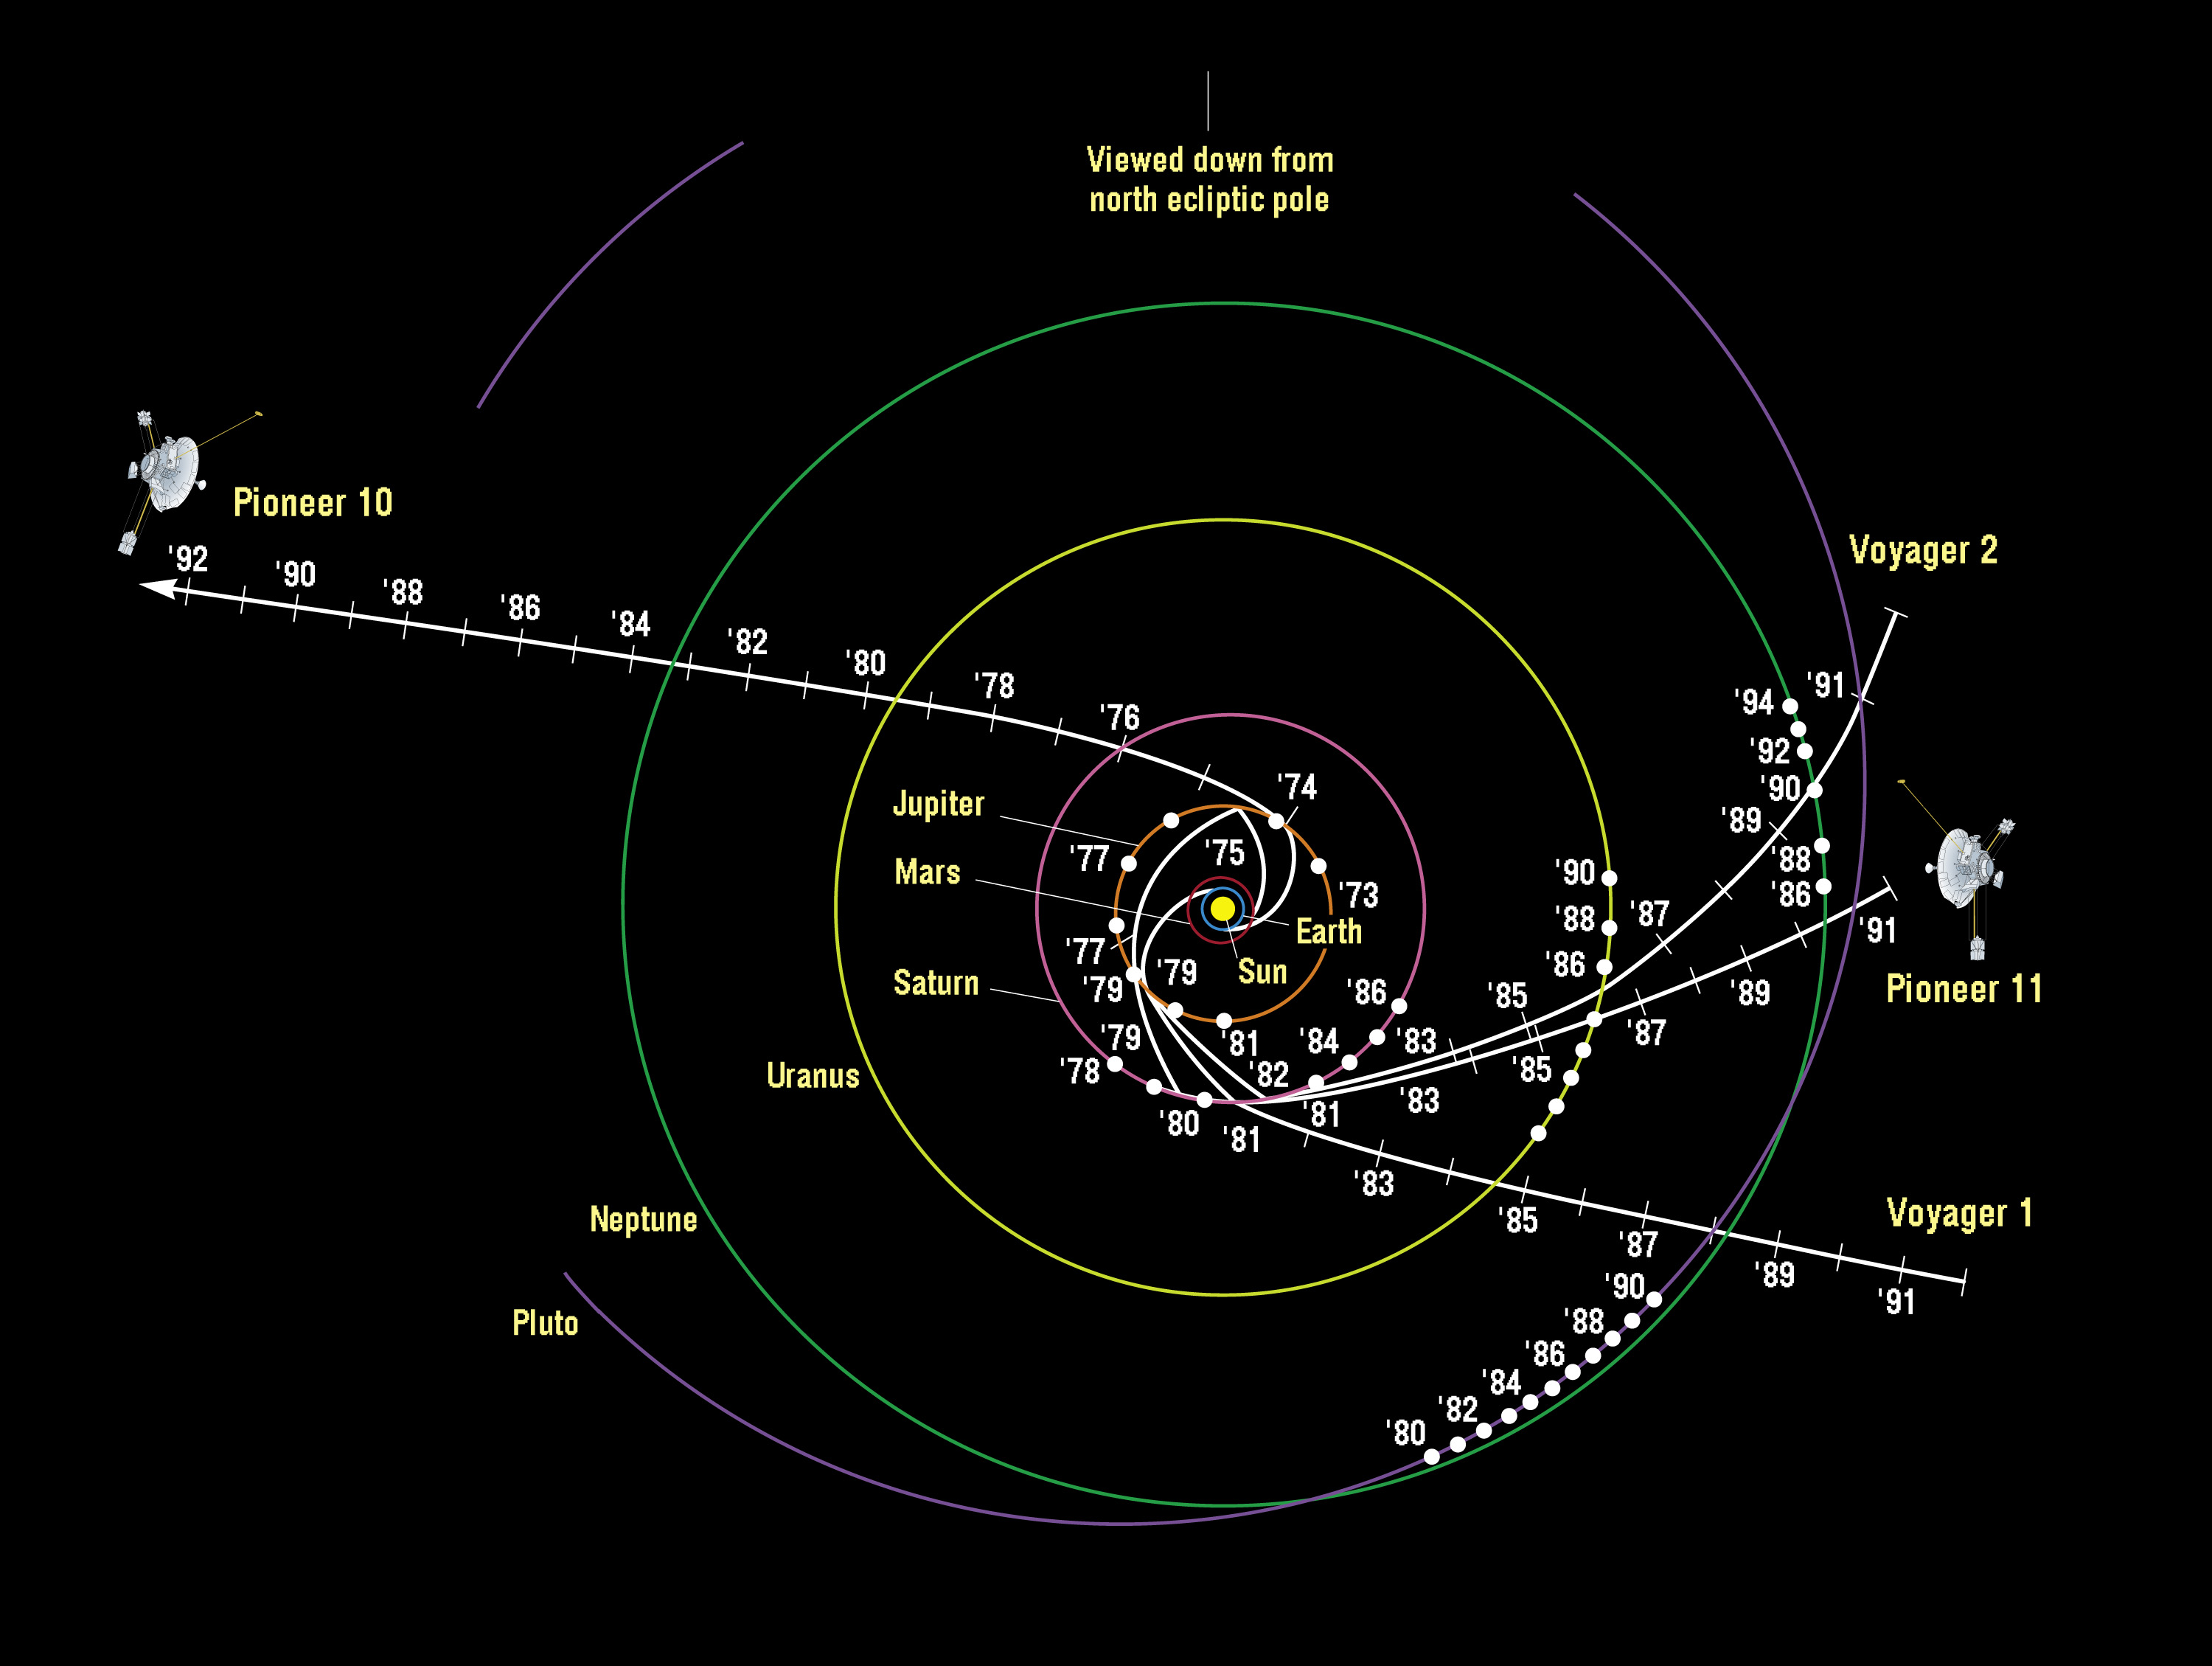 Chart showing trajectories of Pioneers 10 and 11 and Voyagers 1 and 2.